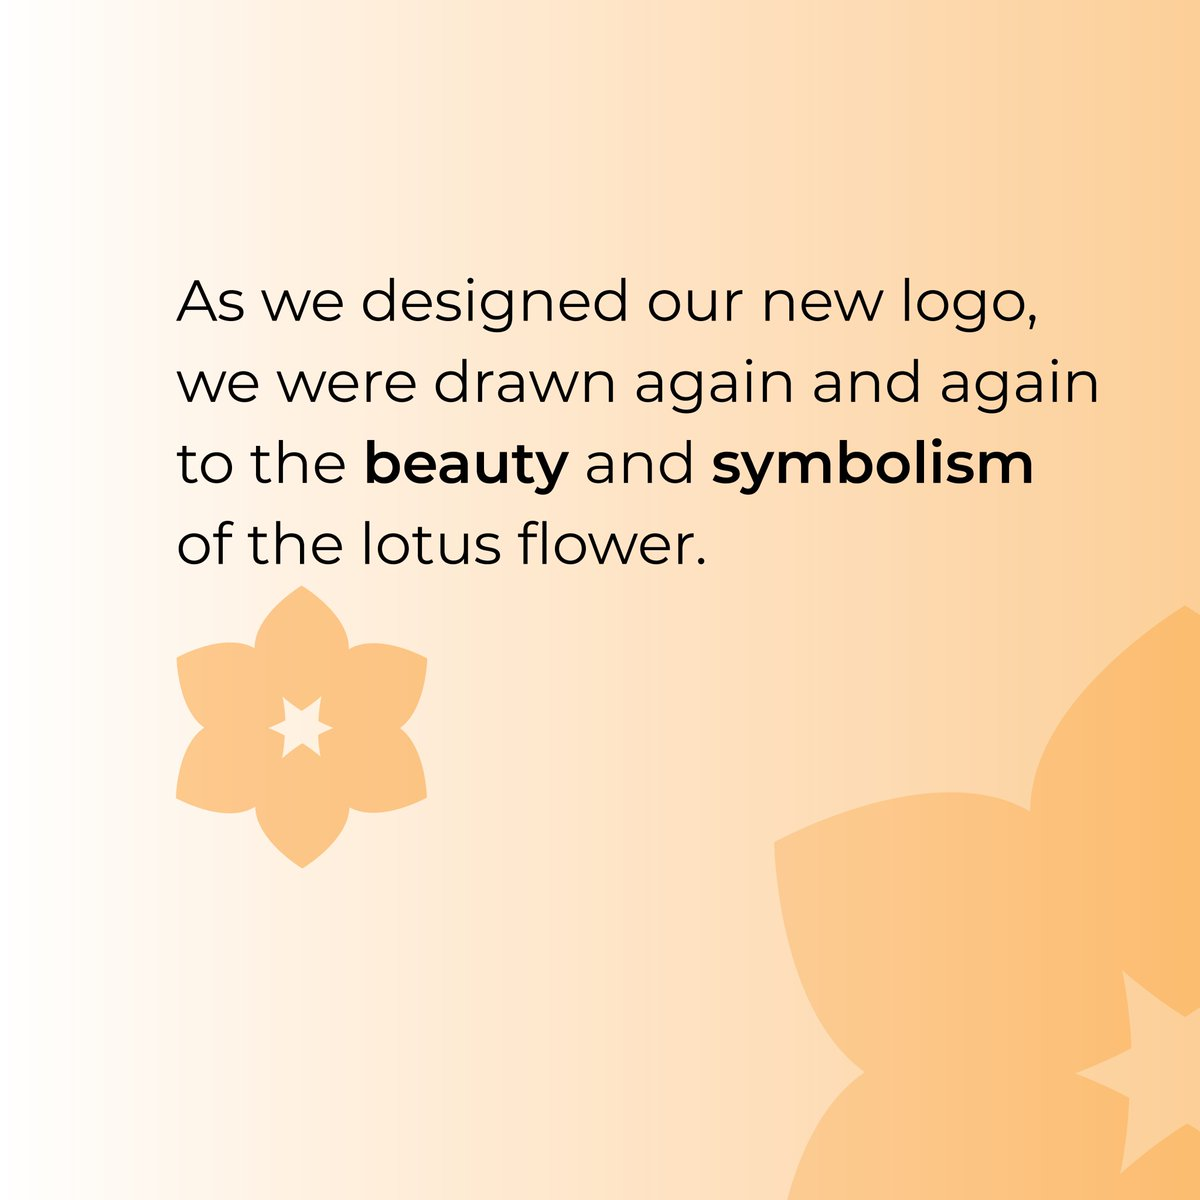 As we designed our new logo, we were drawn again and again to the beauty and symbolism of the #lotus. This flower grows in muddy, swampy water with little sunlight and yet somehow still manages to become a magnificent and beautiful blossom. https://t.co/mMfefSHm8d